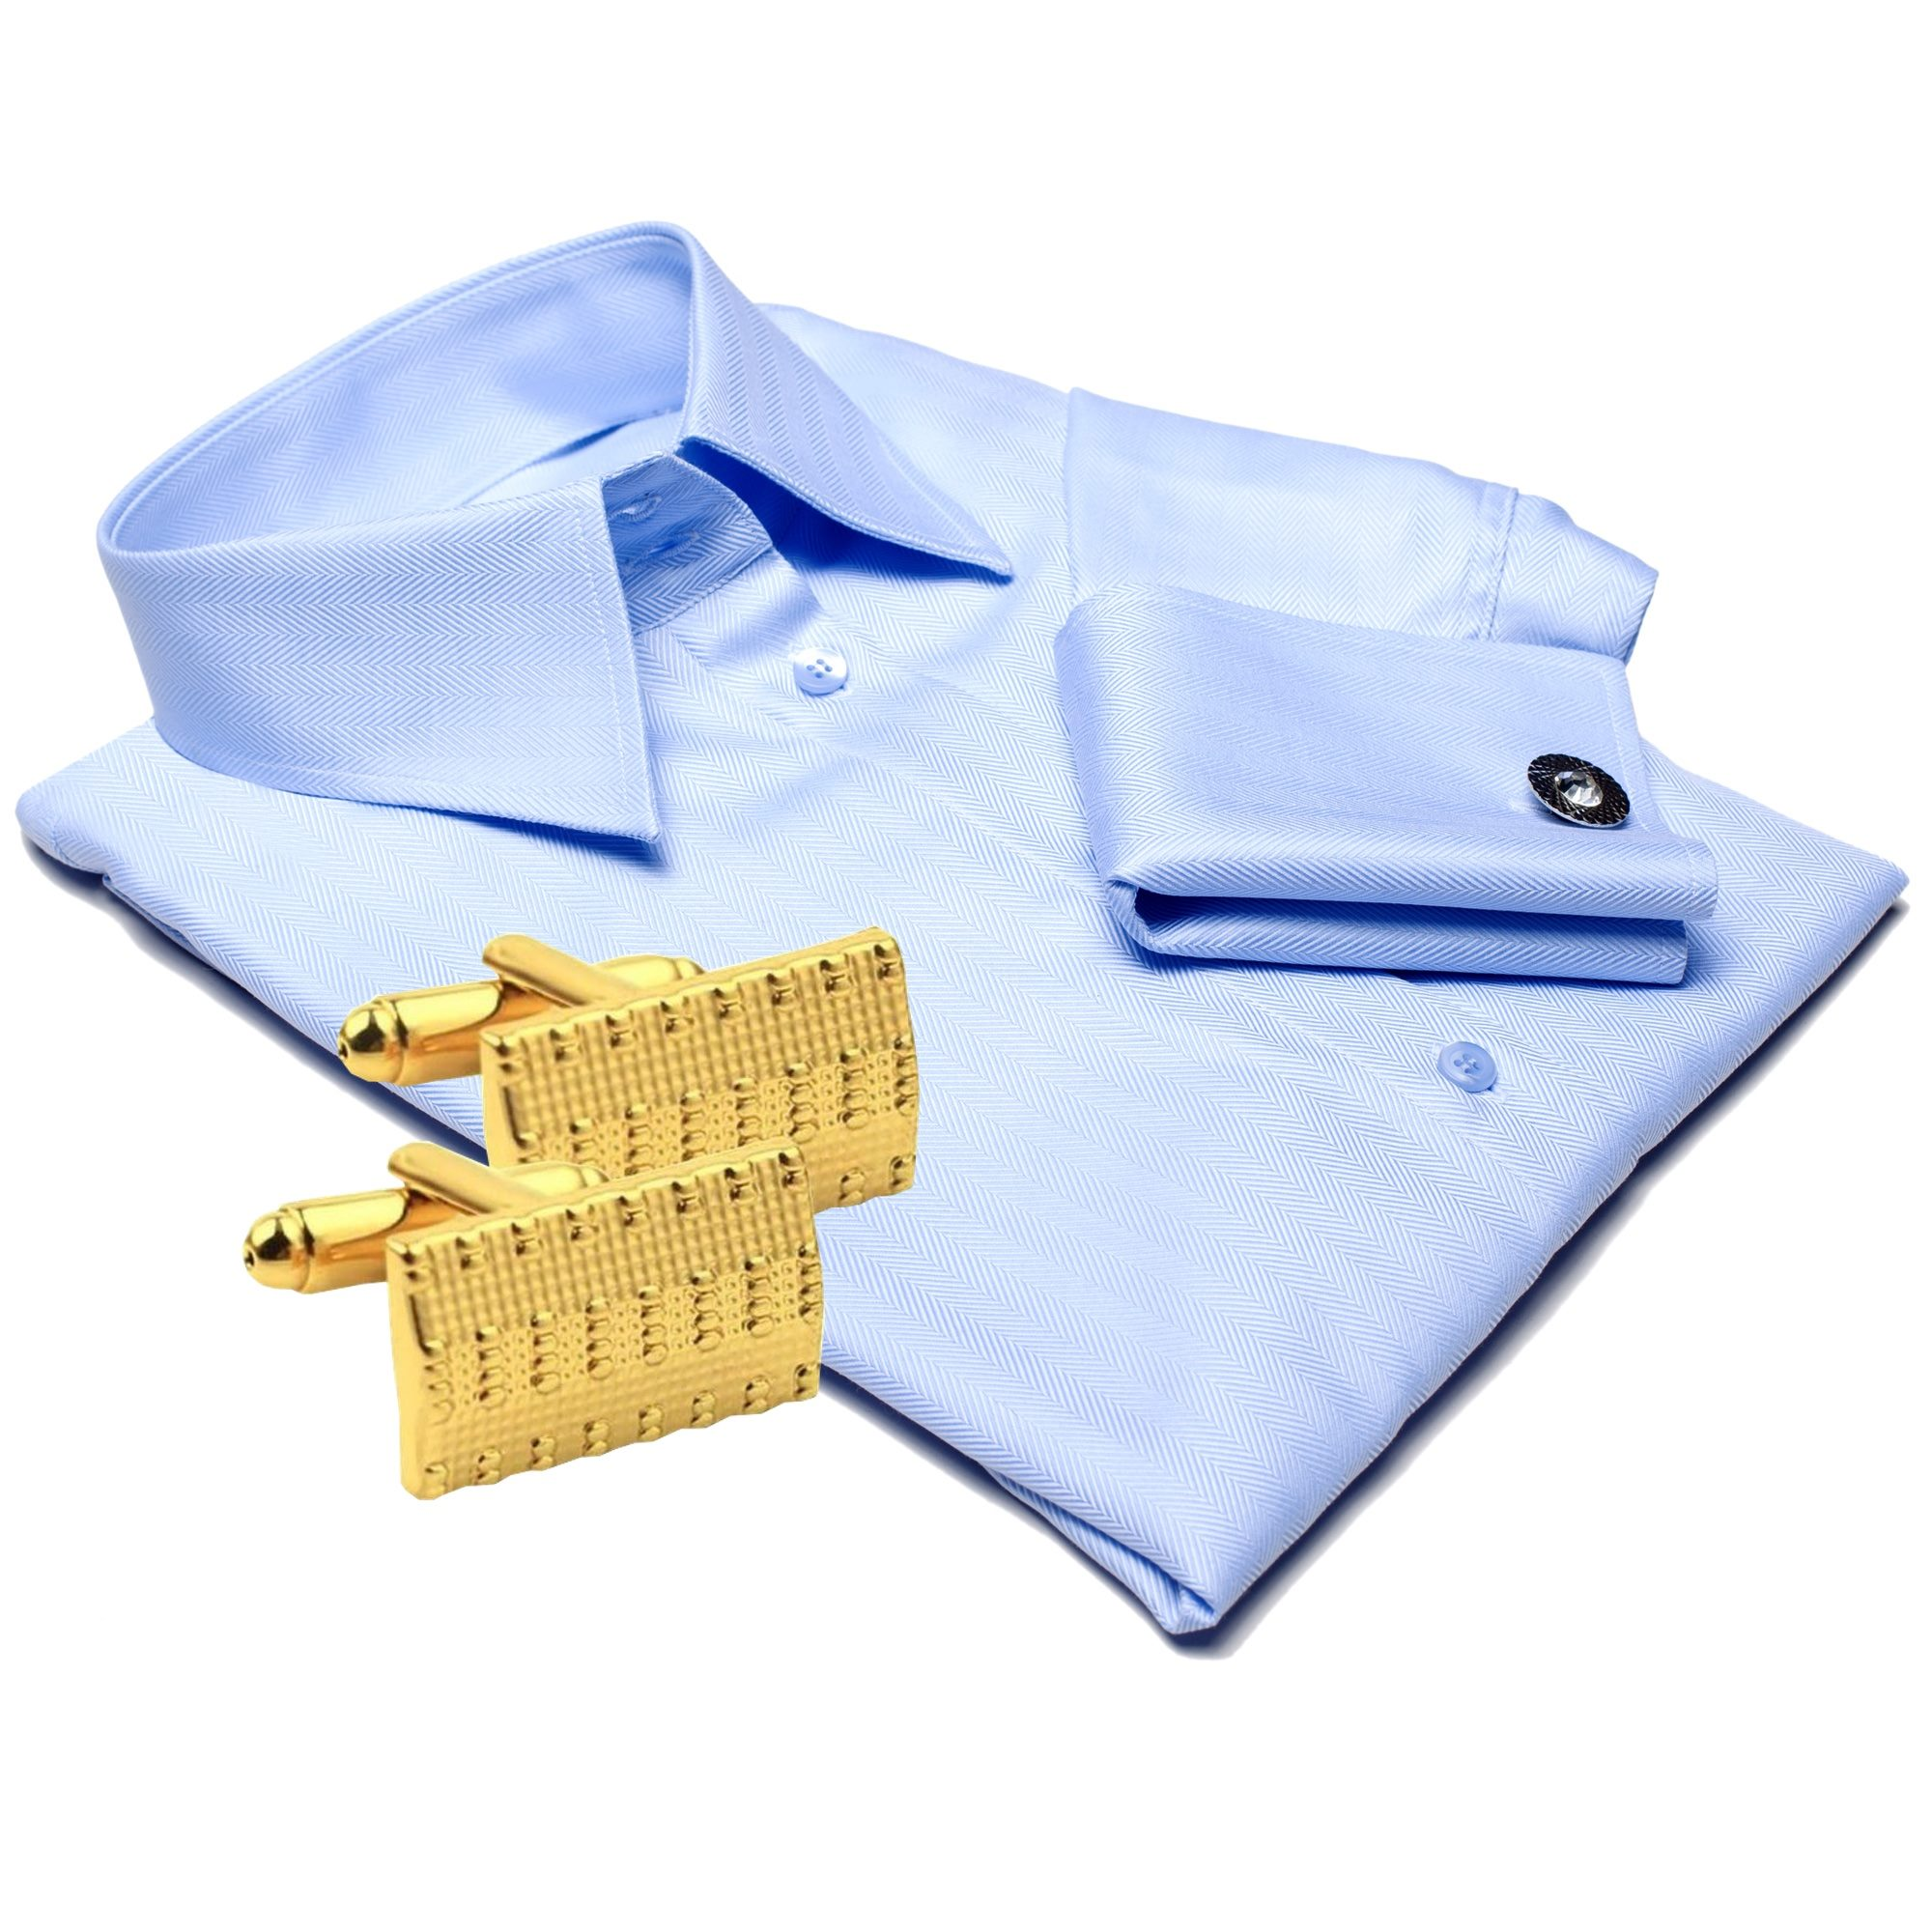 PARIS light blue dress shirt + CUFFLINKS